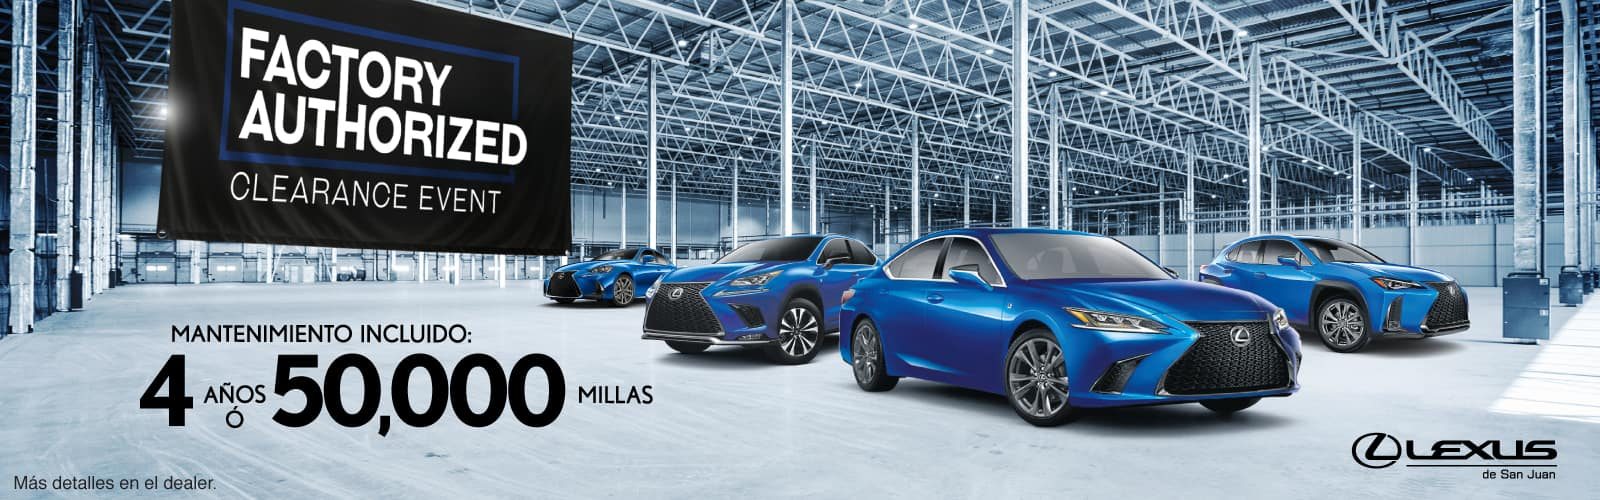 Lexus Authorized Clearance Event Octubre Web Banners 1